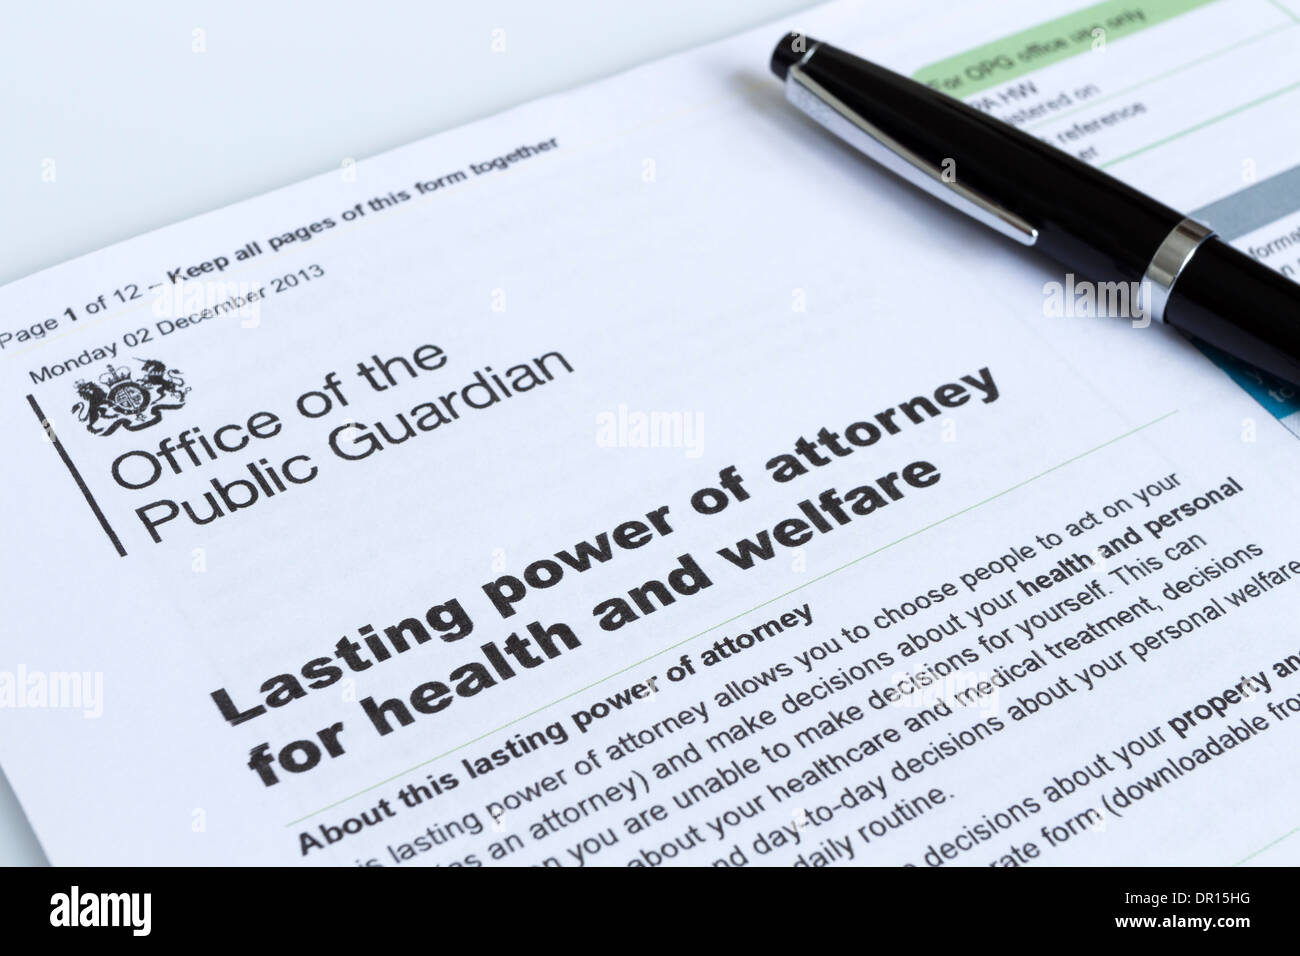 Lasting power of attorney for health and welfare form from the lasting power of attorney for health and welfare form from the office of the public guardian uk solutioingenieria Image collections